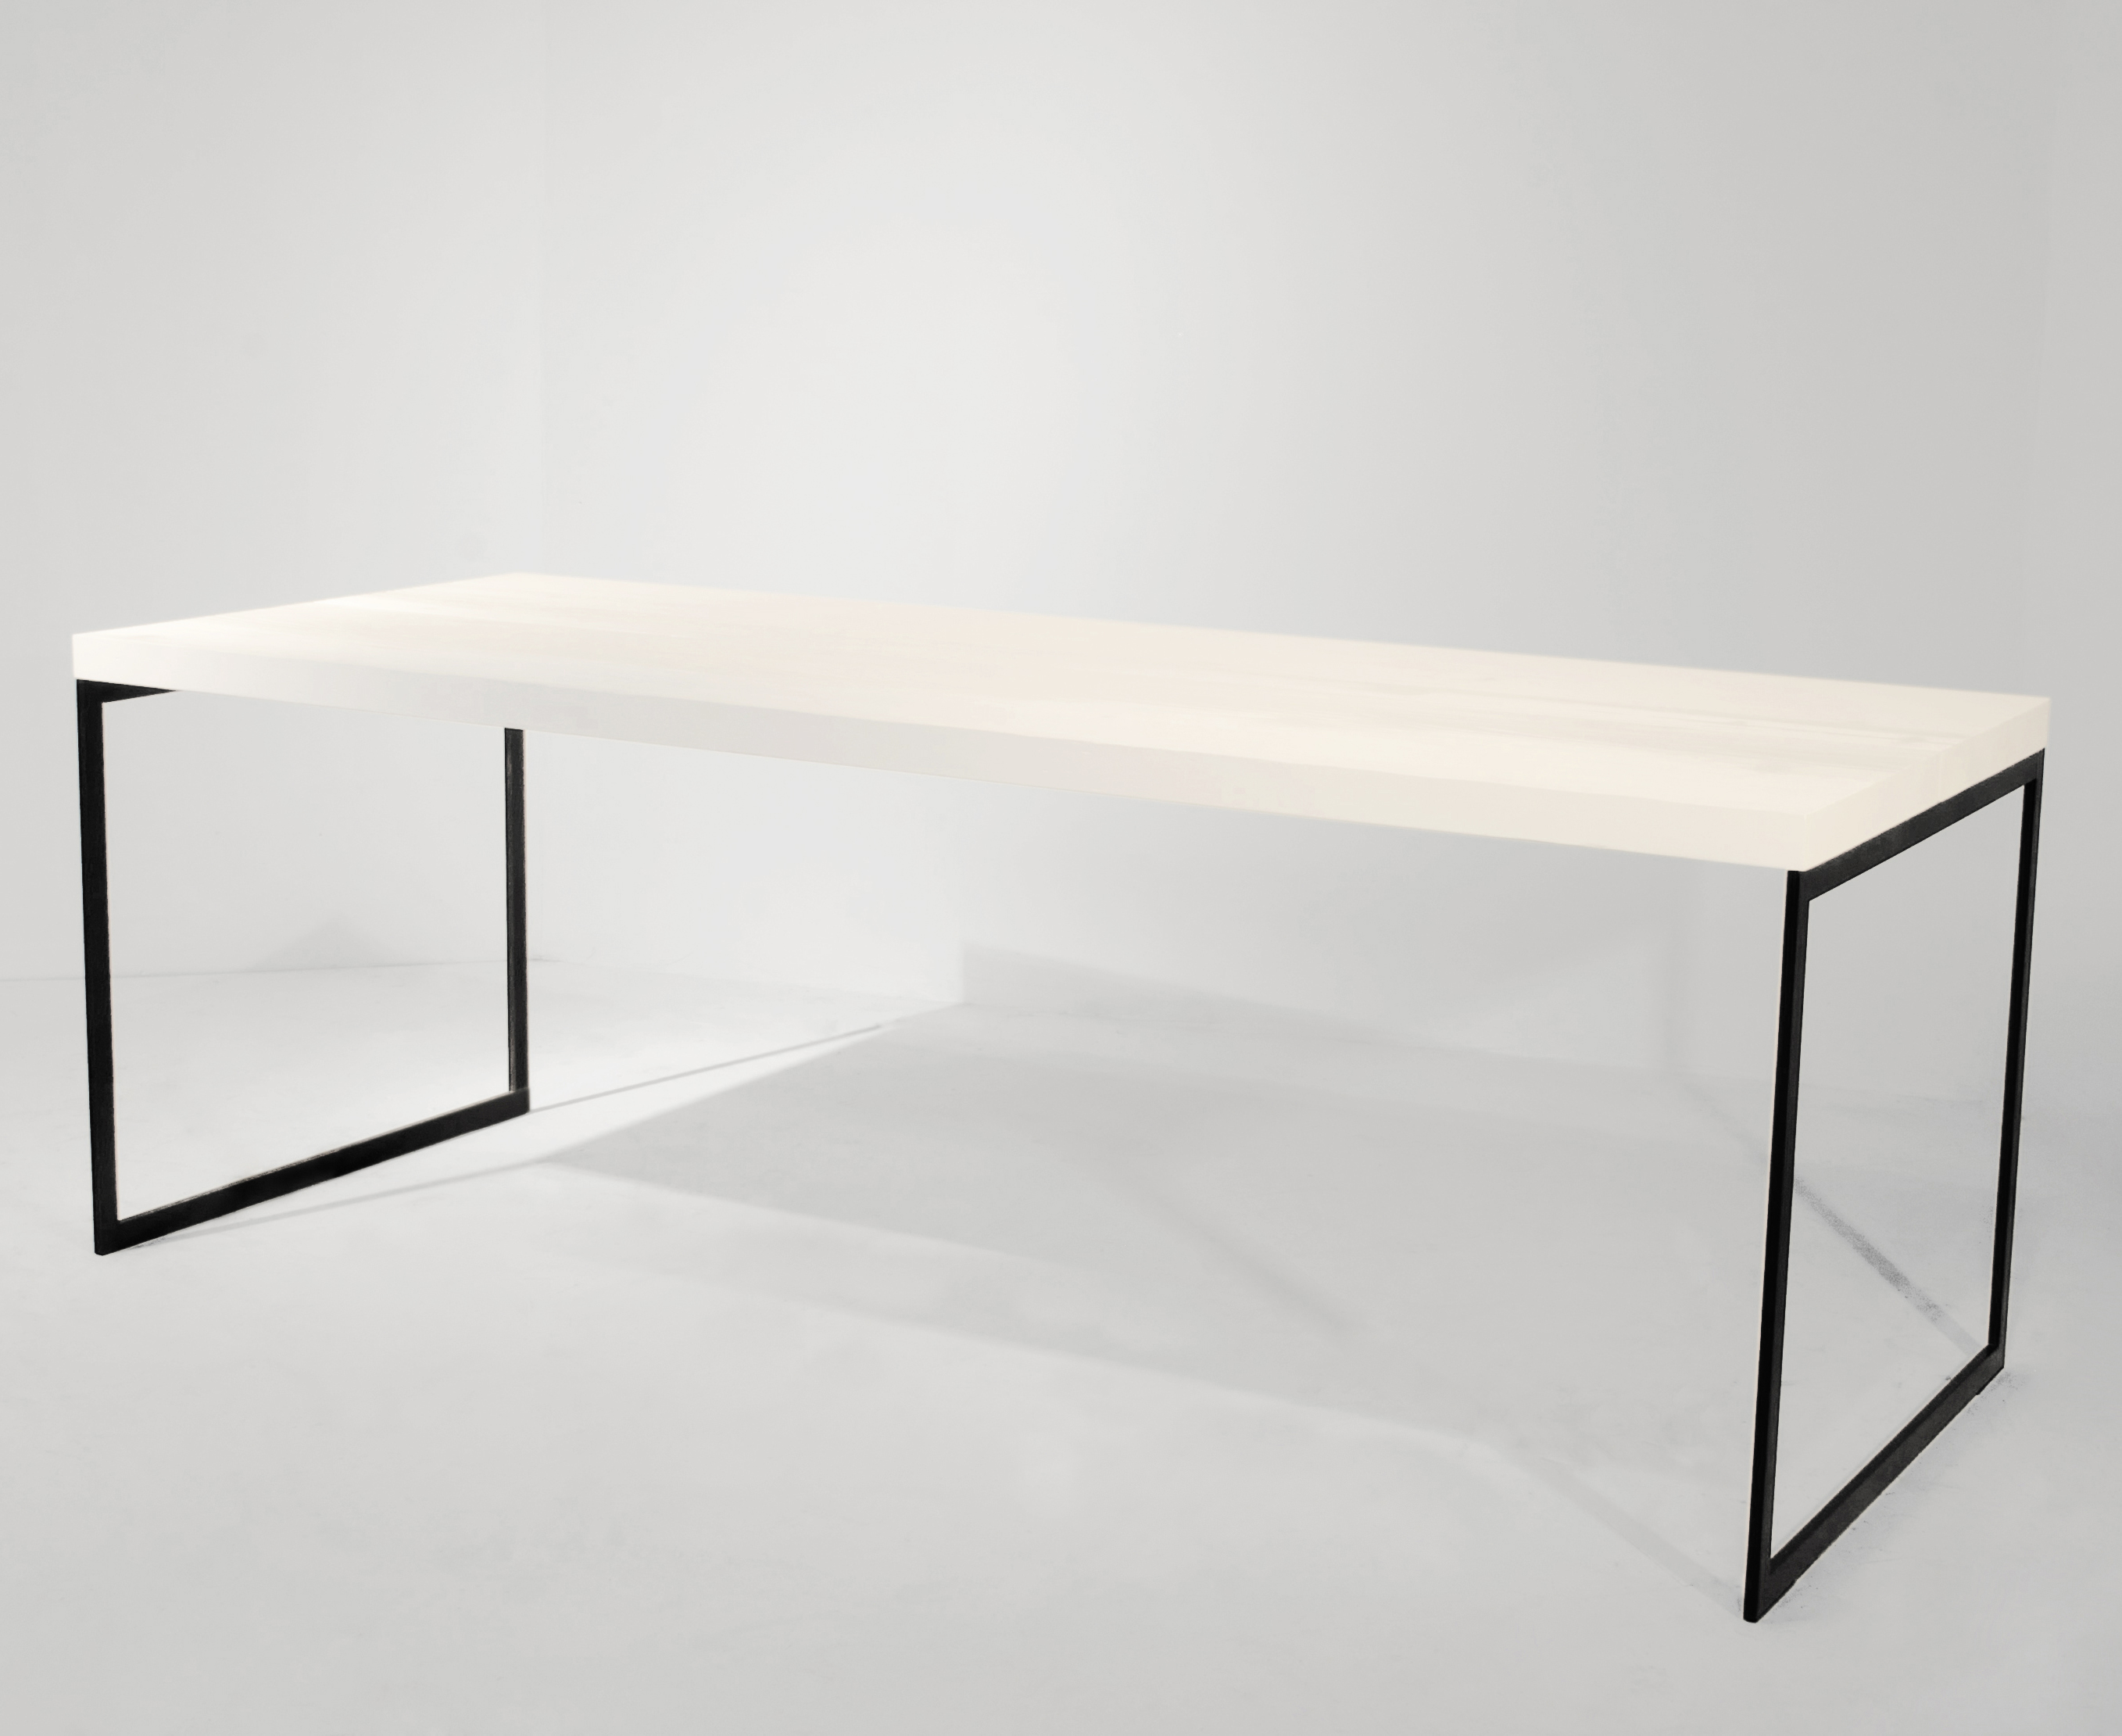 laquered wood top dining table43.web.jpg